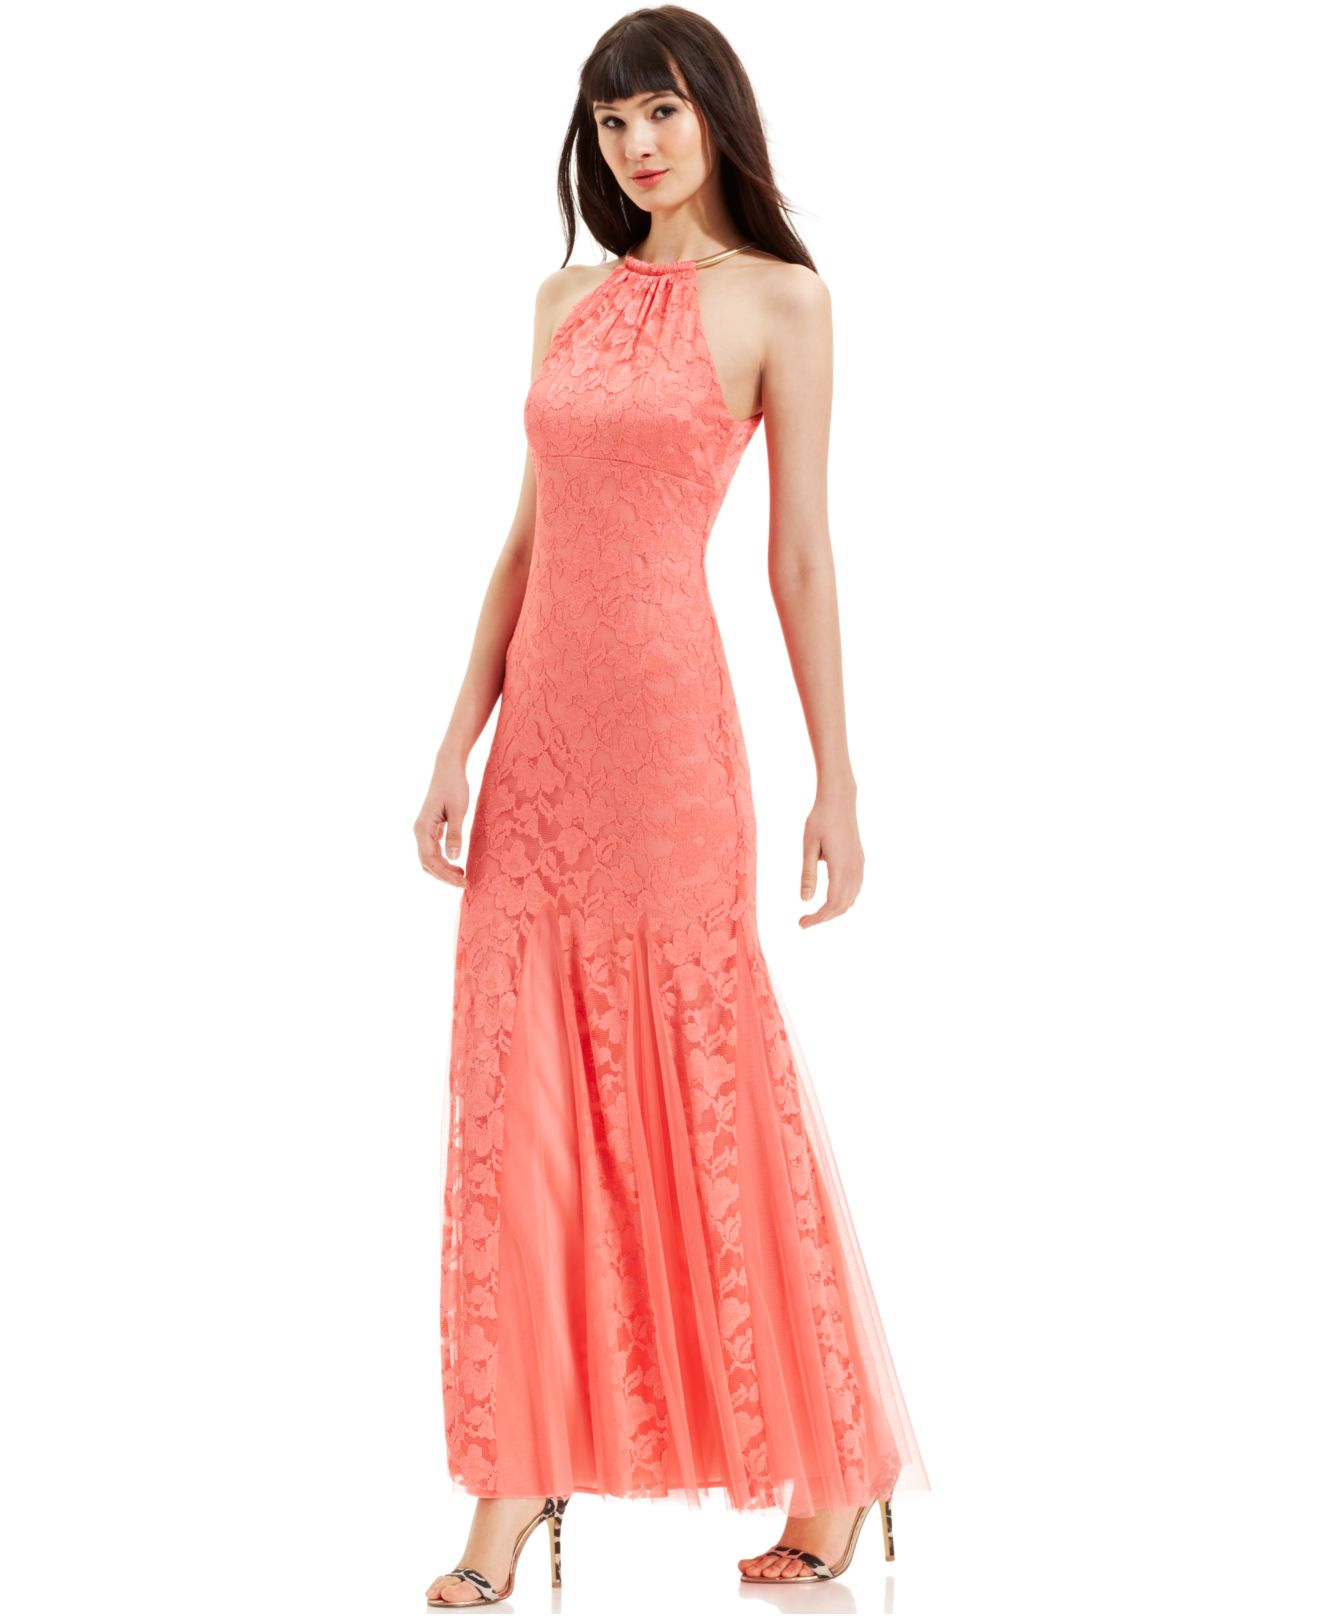 Lyst - Xscape Godet-Pleat Lace Halter Gown in Pink